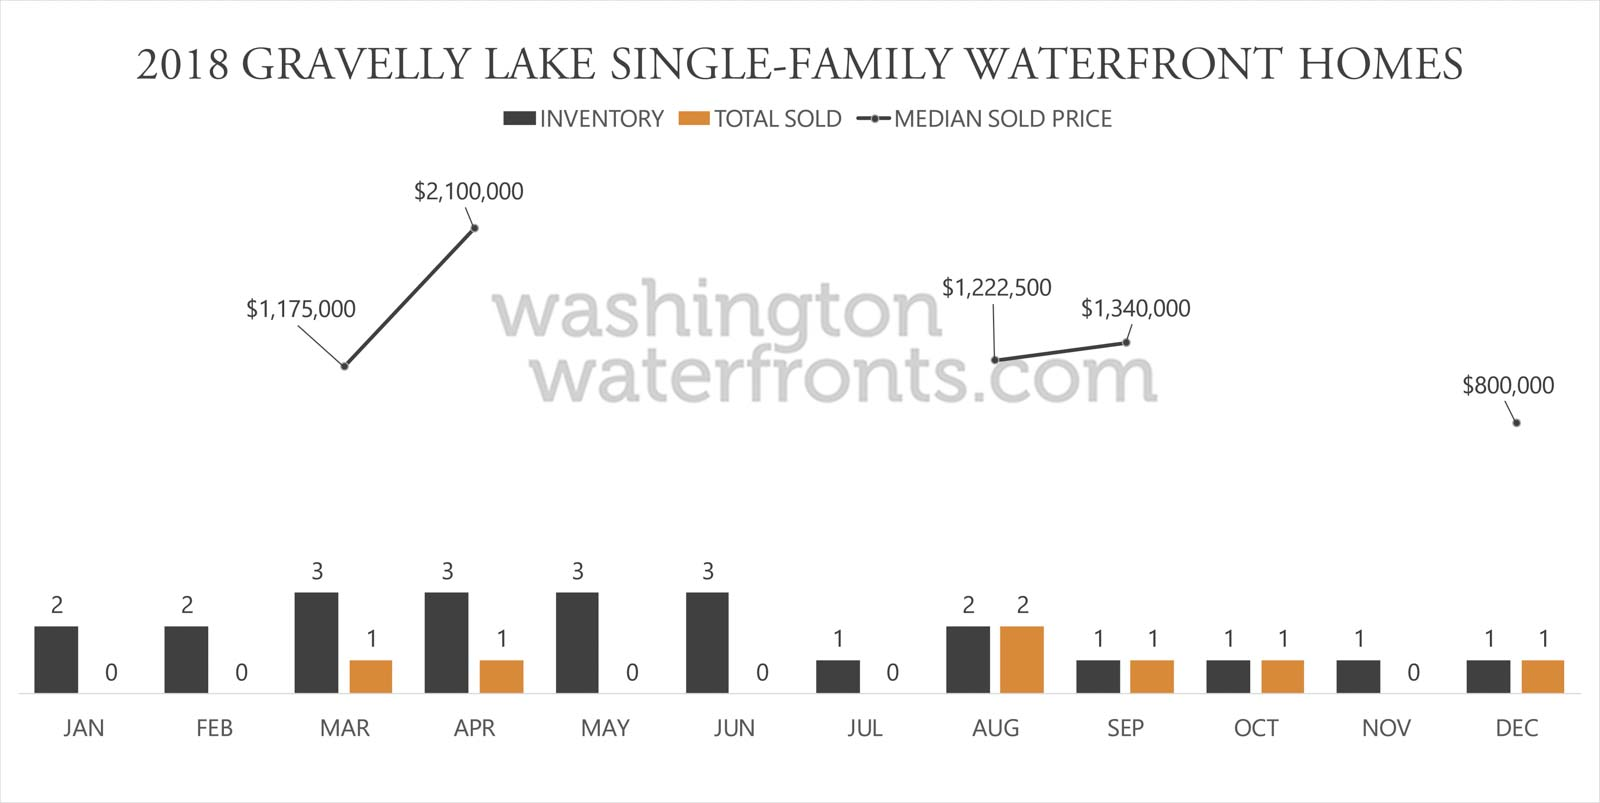 Gravelly Lake Waterfront Inventory